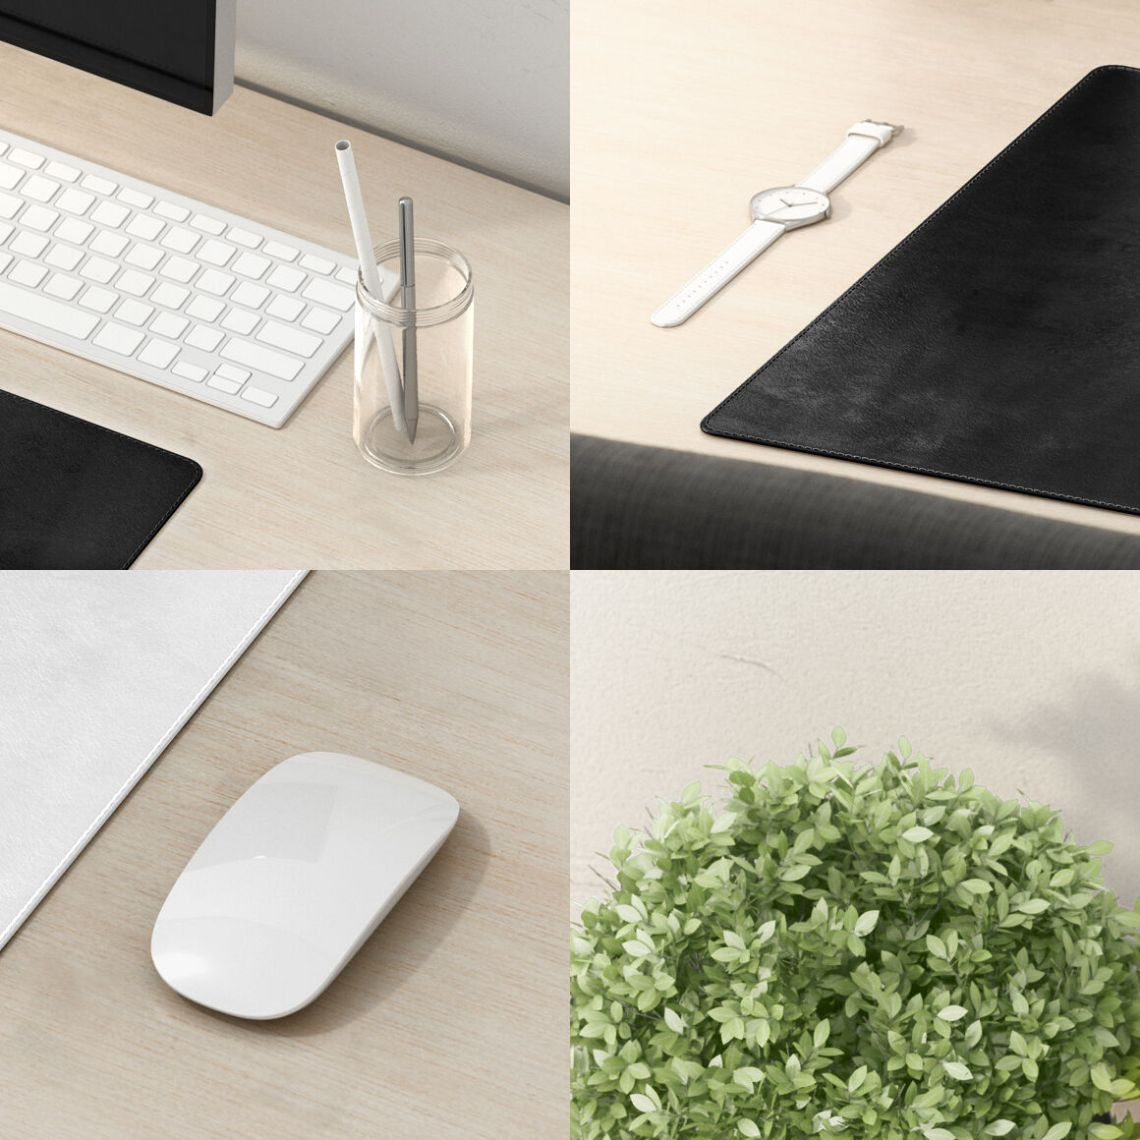 Download Mouse Pad Mockup Psd Free Download Yellowimages